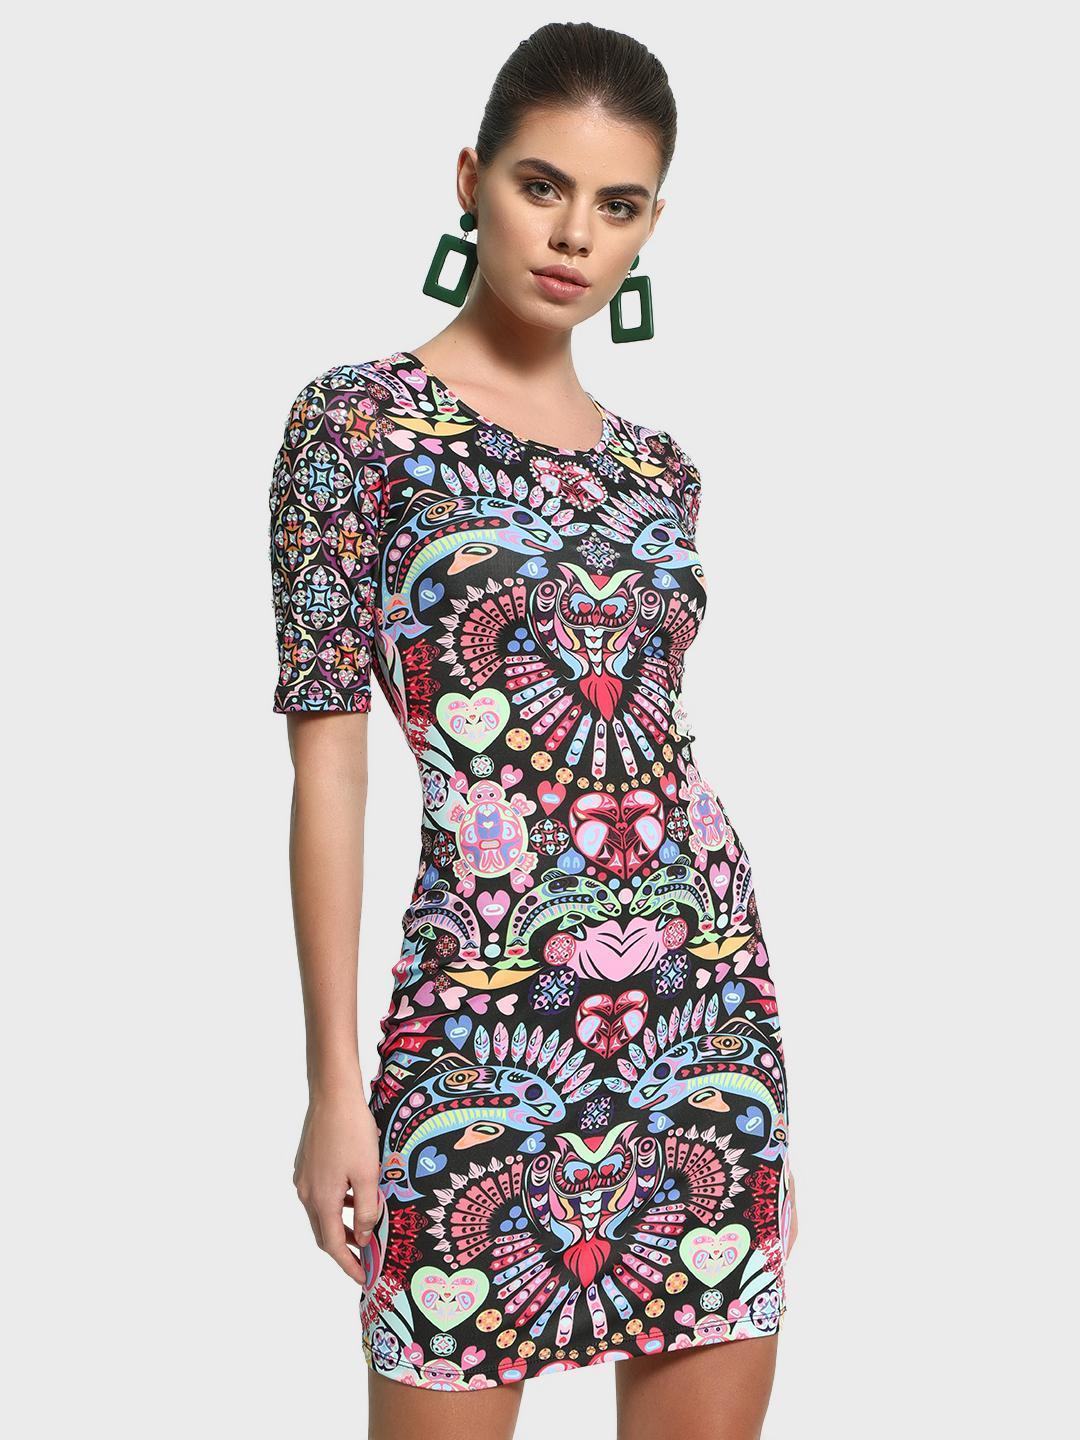 Manish Arora Paris X KOOVS Multi Digital Print Embellished Bodycon Dress 1